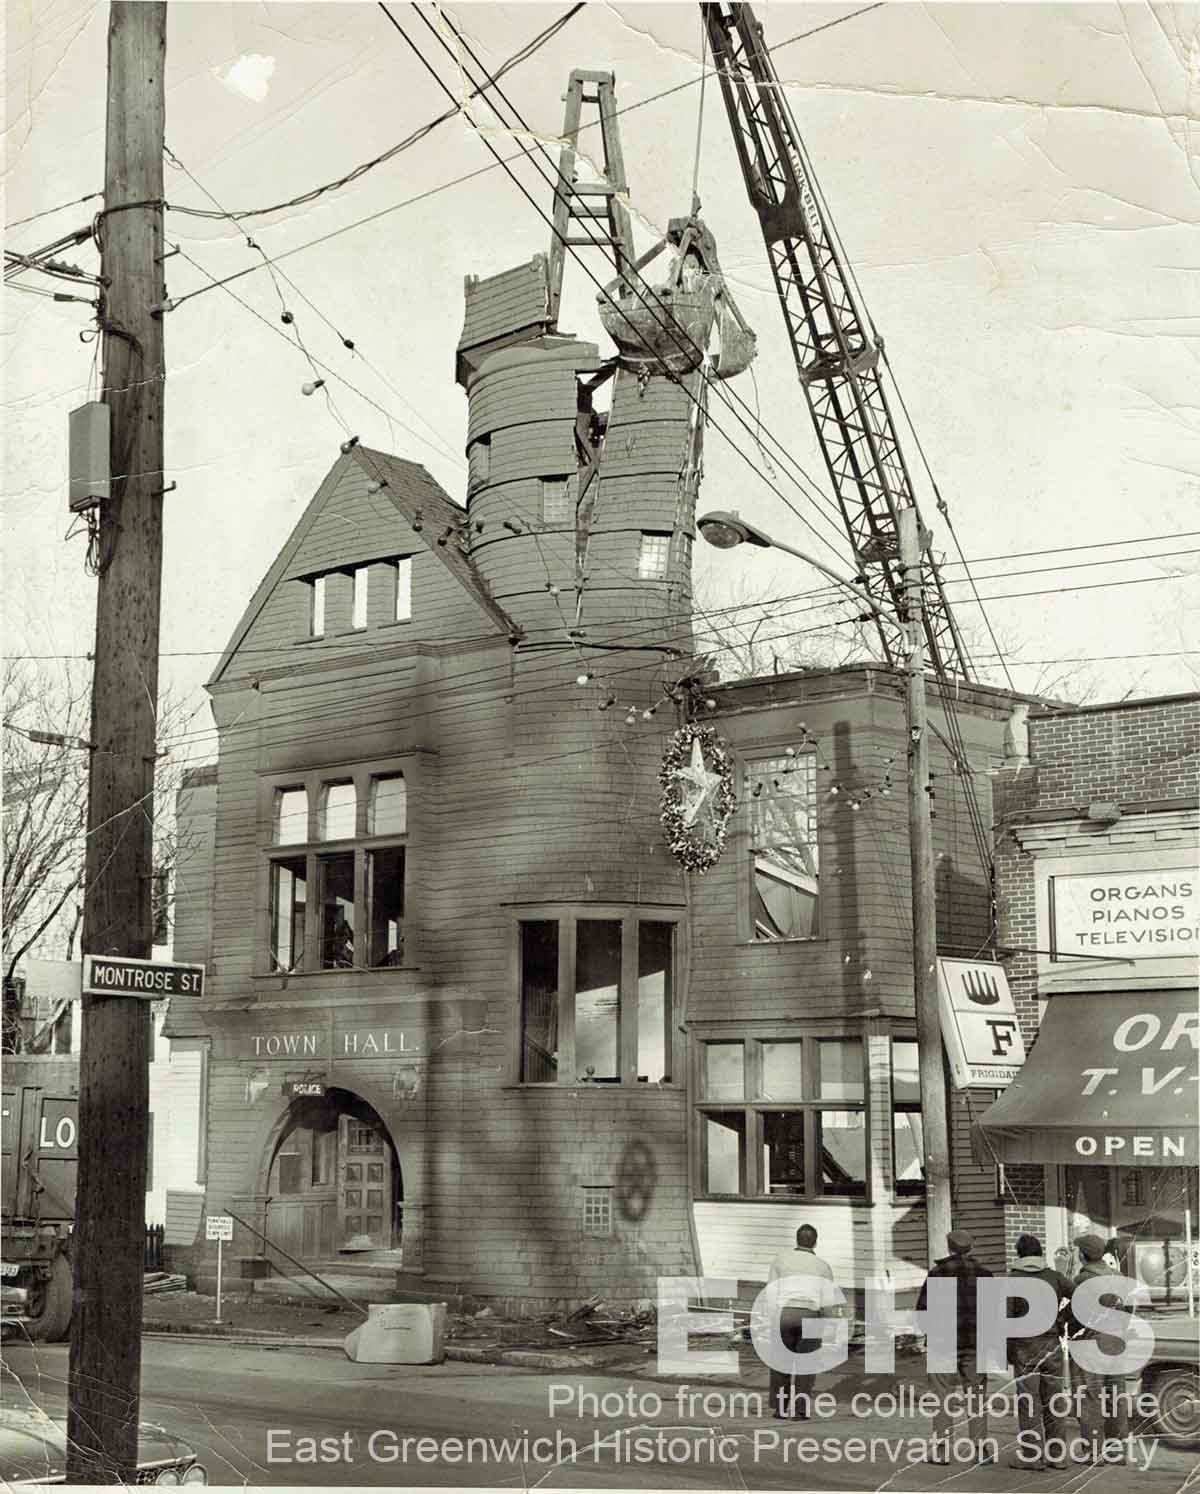 The Old East Greenwich Town Hall being demolished in December 1964.